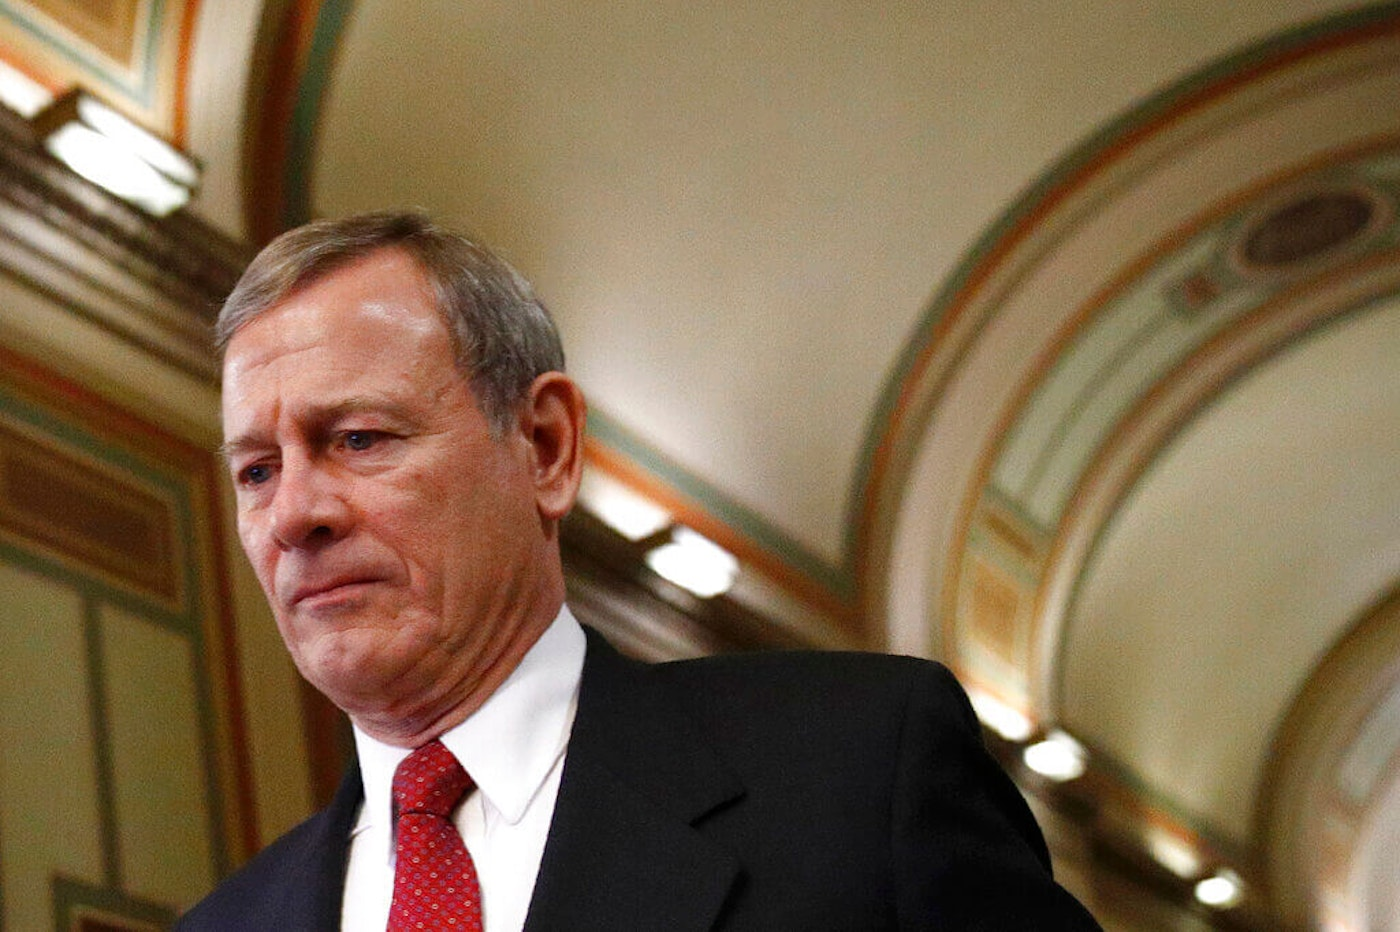 chief justice roberts in the majority restricting abortion pill access